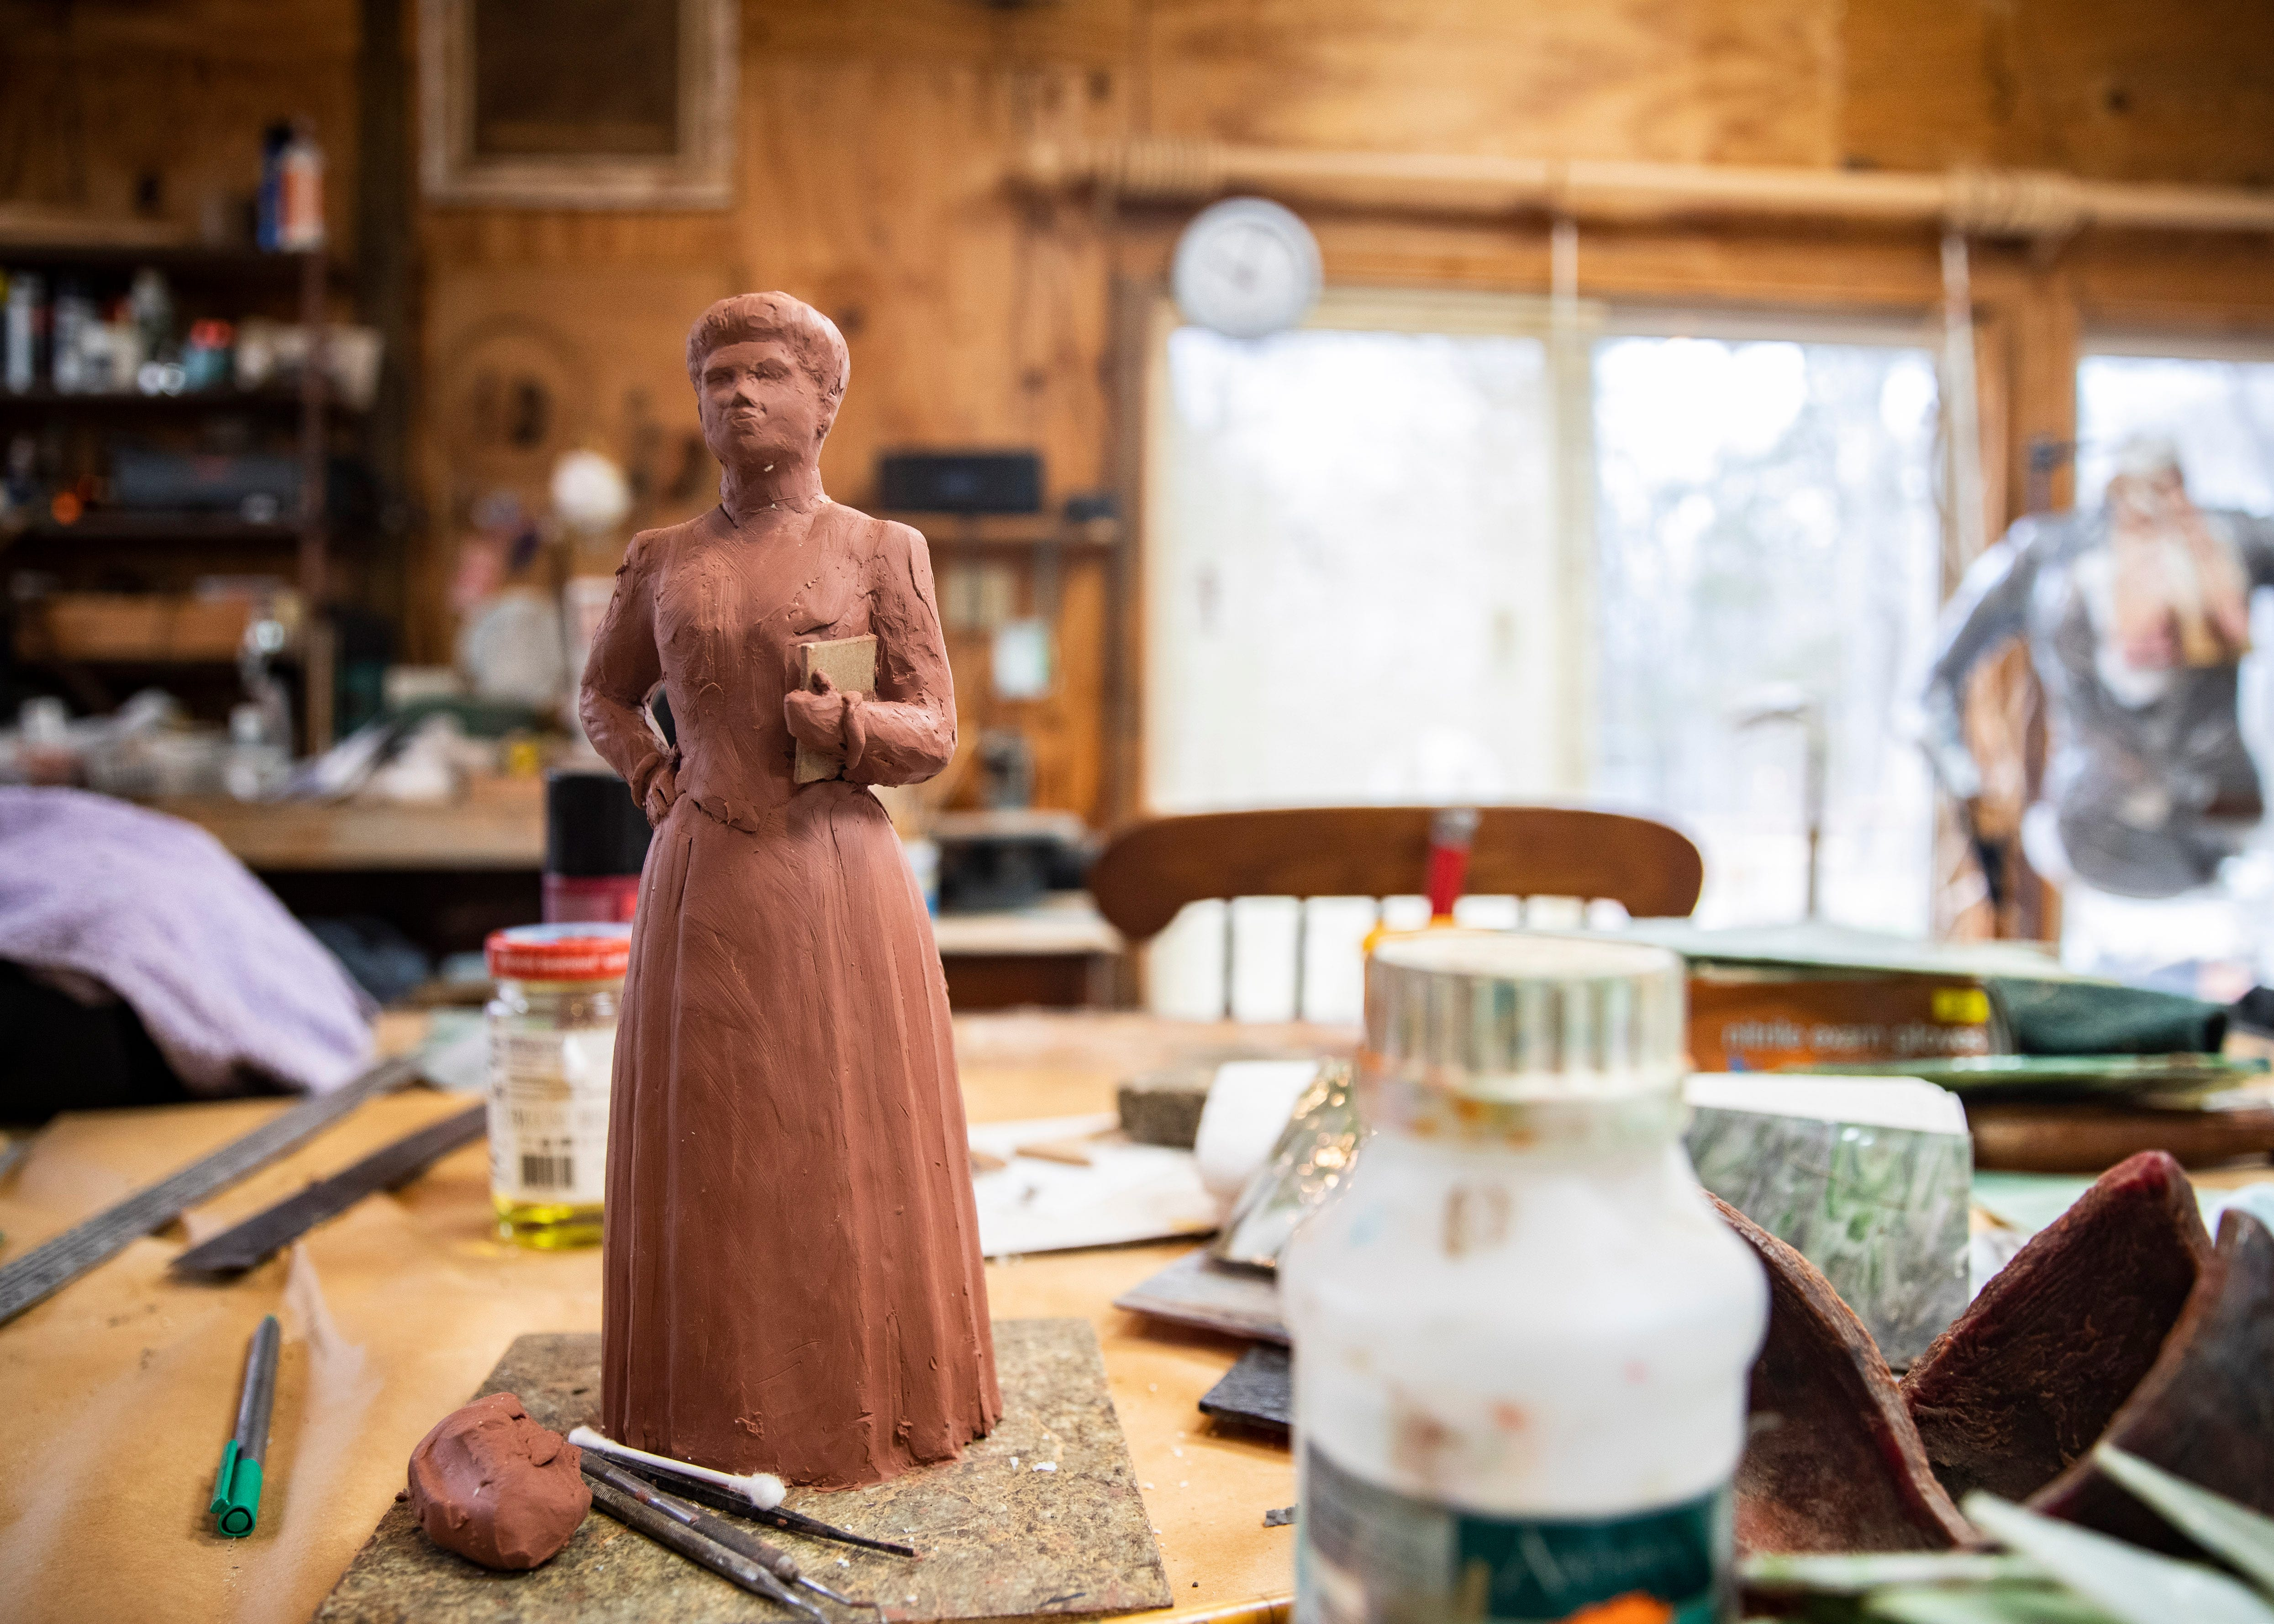 After selecting the time period Wells would be portrayed in the final statue, a small clay model of Wells was created by Lugar. This was used for her reference as she moved to the life-sized version, instead of creating multiple 2D sketches.